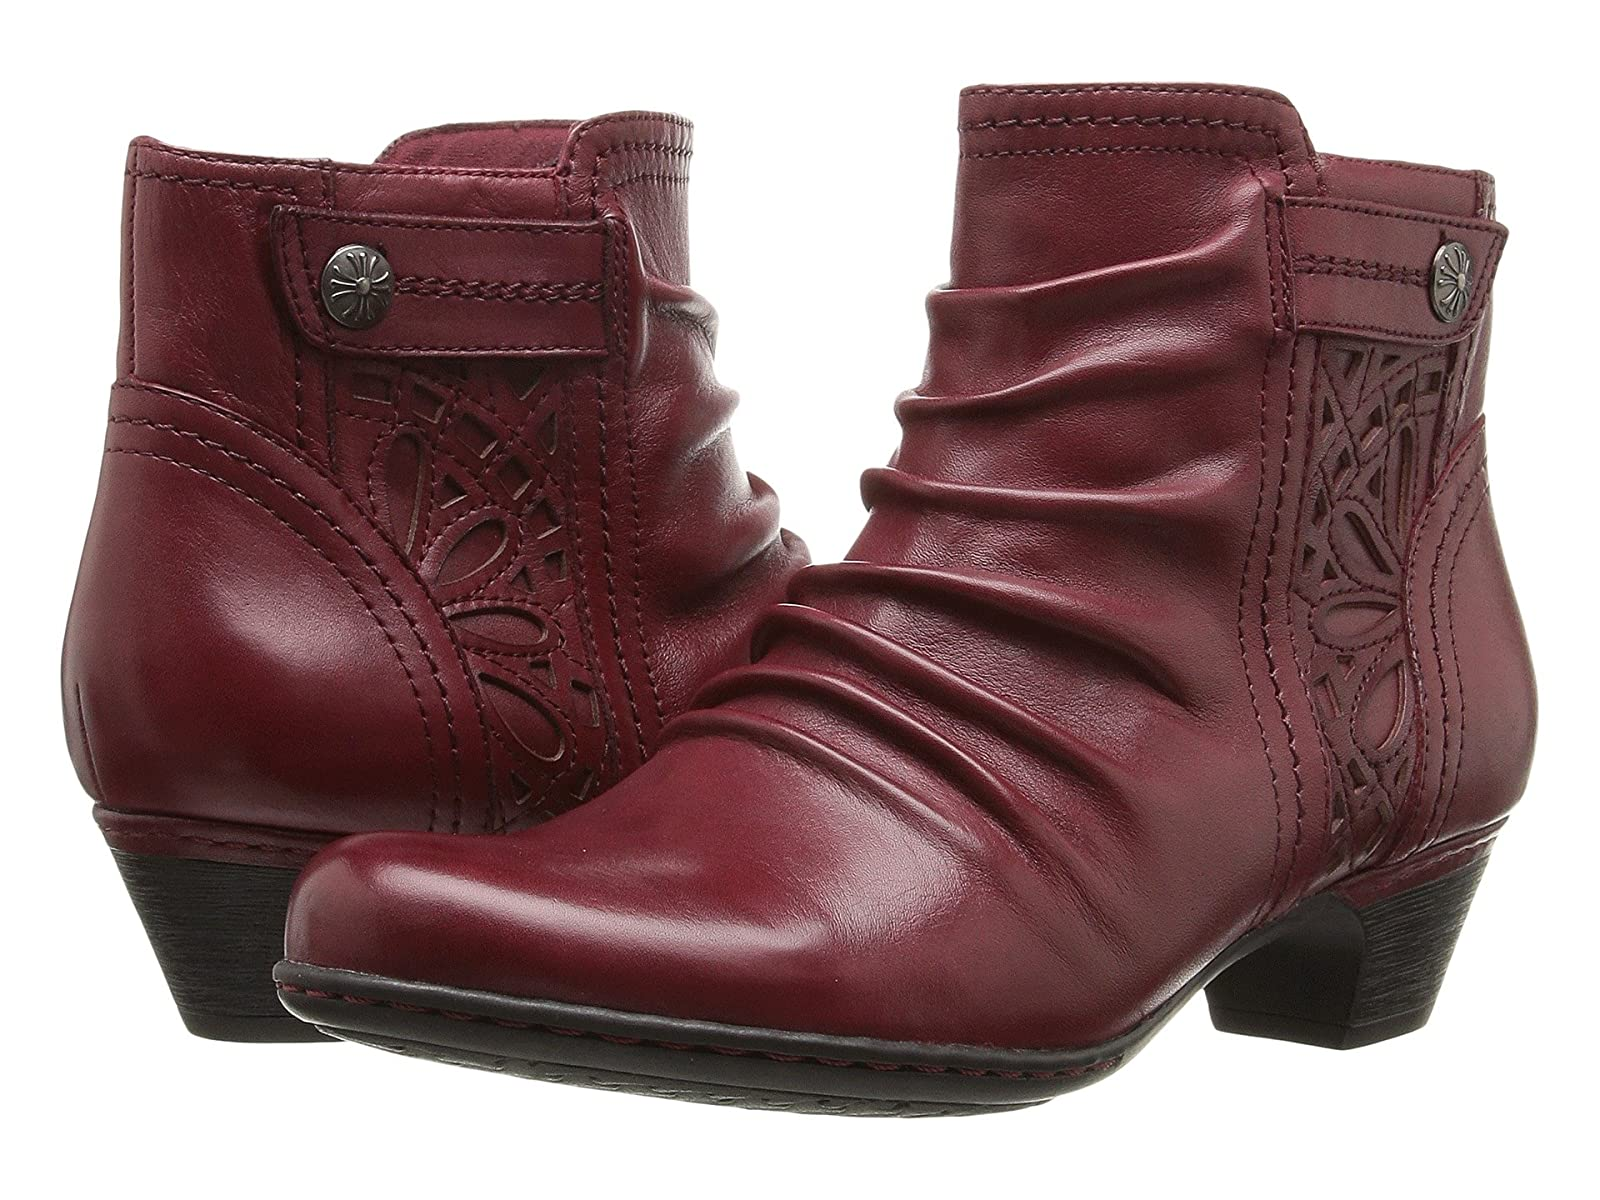 Rockport Cobb Hill Collection Cobb Hill AbileneEconomical and quality shoes